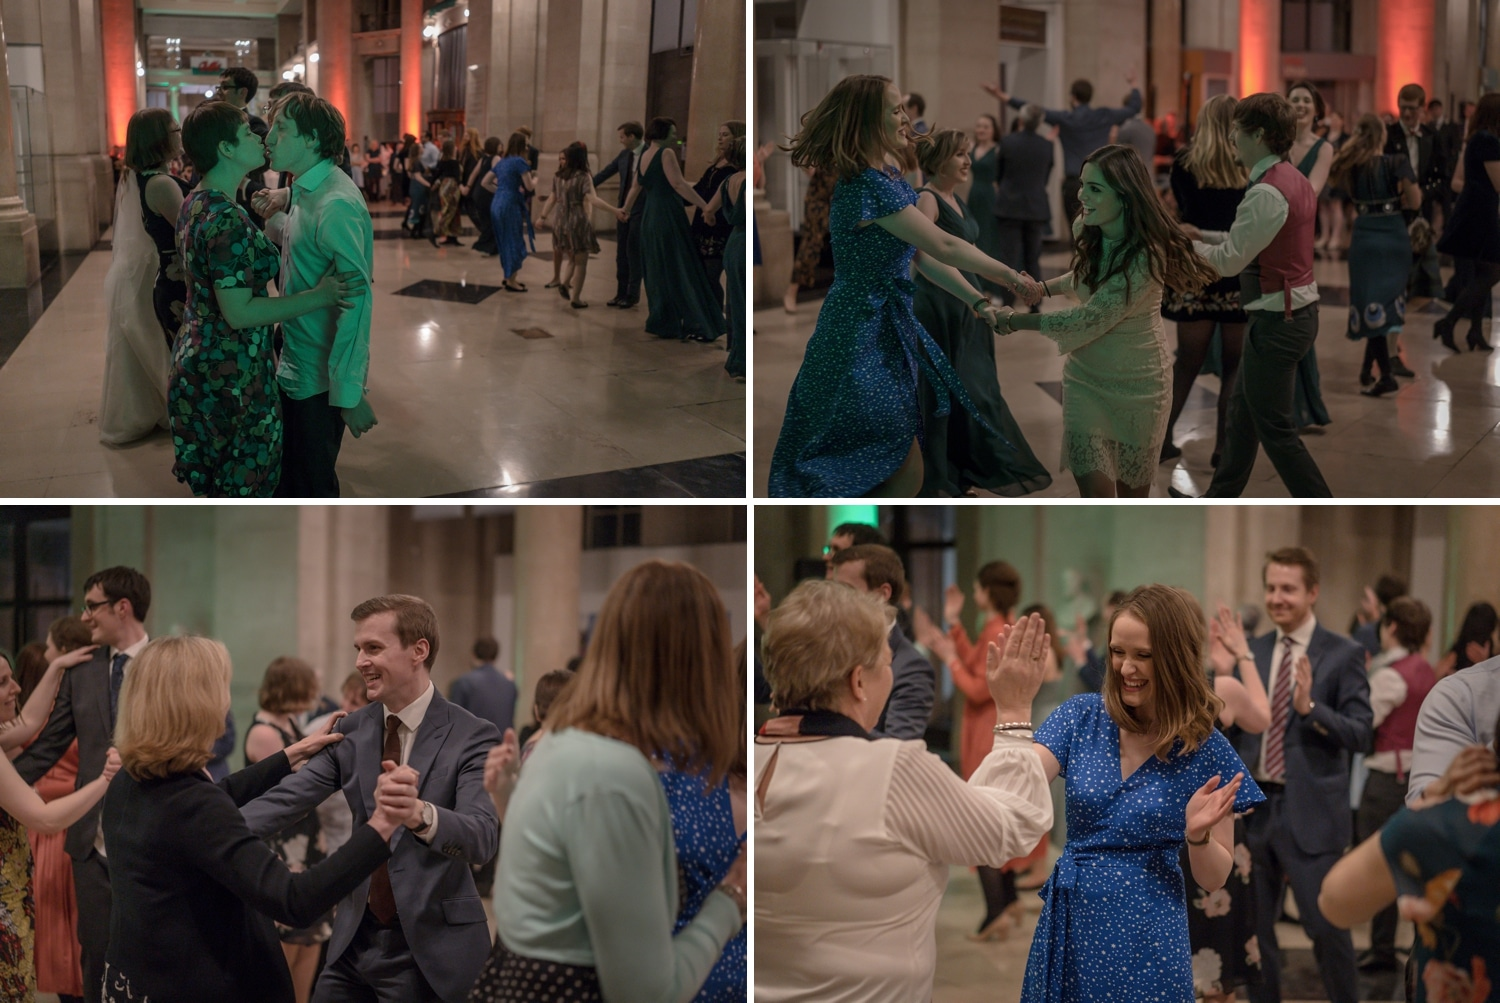 Dancing at Cardiff Museum wedding